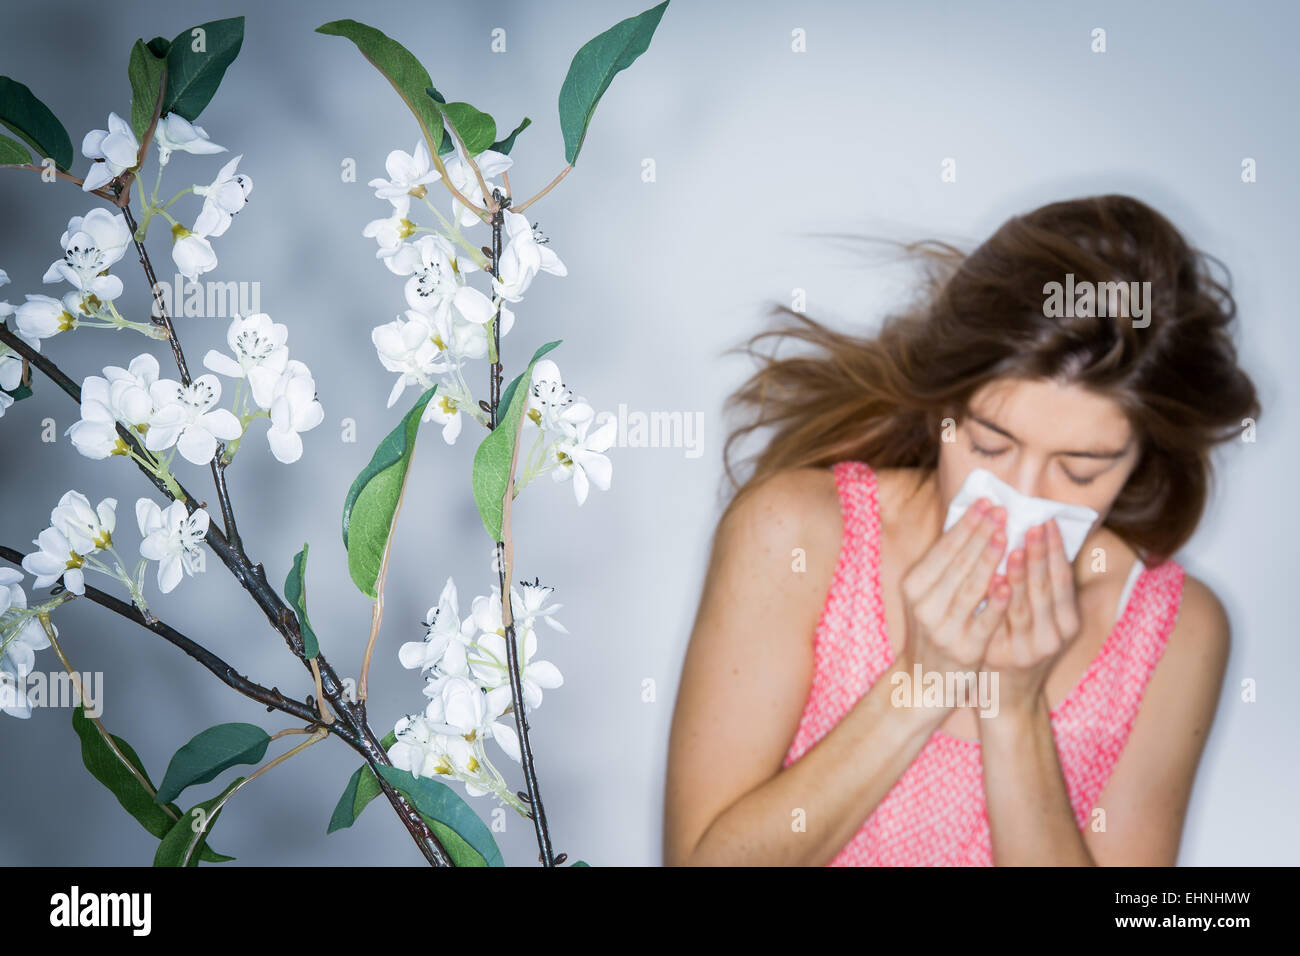 Woman with hay fever blowing her nose. - Stock Image